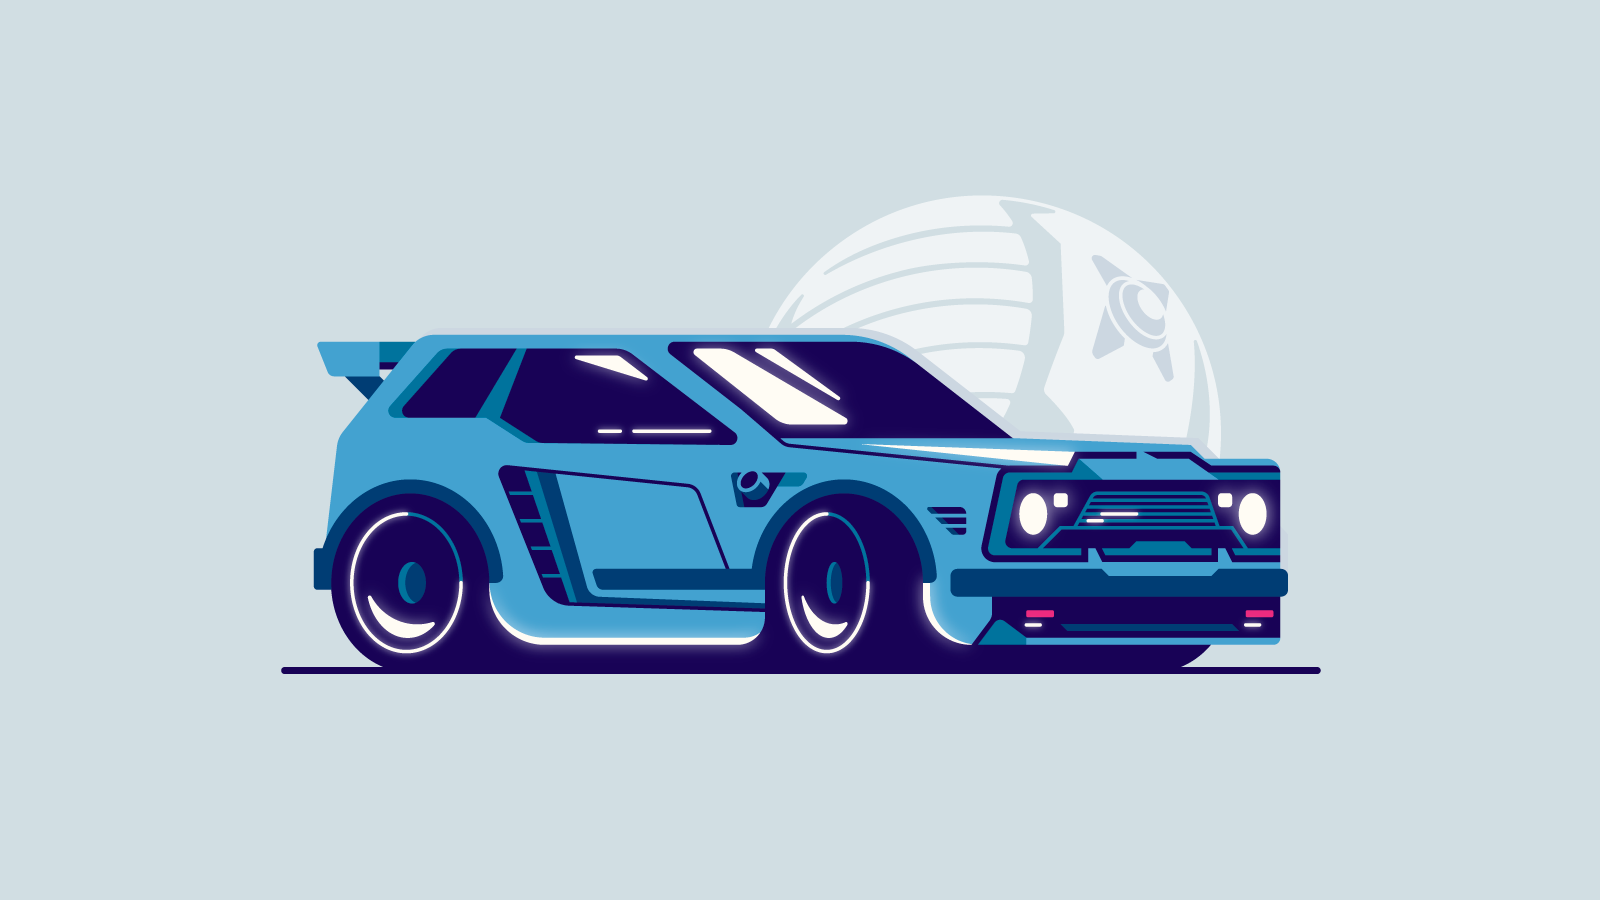 I'm designing a series of Rocket League cars in